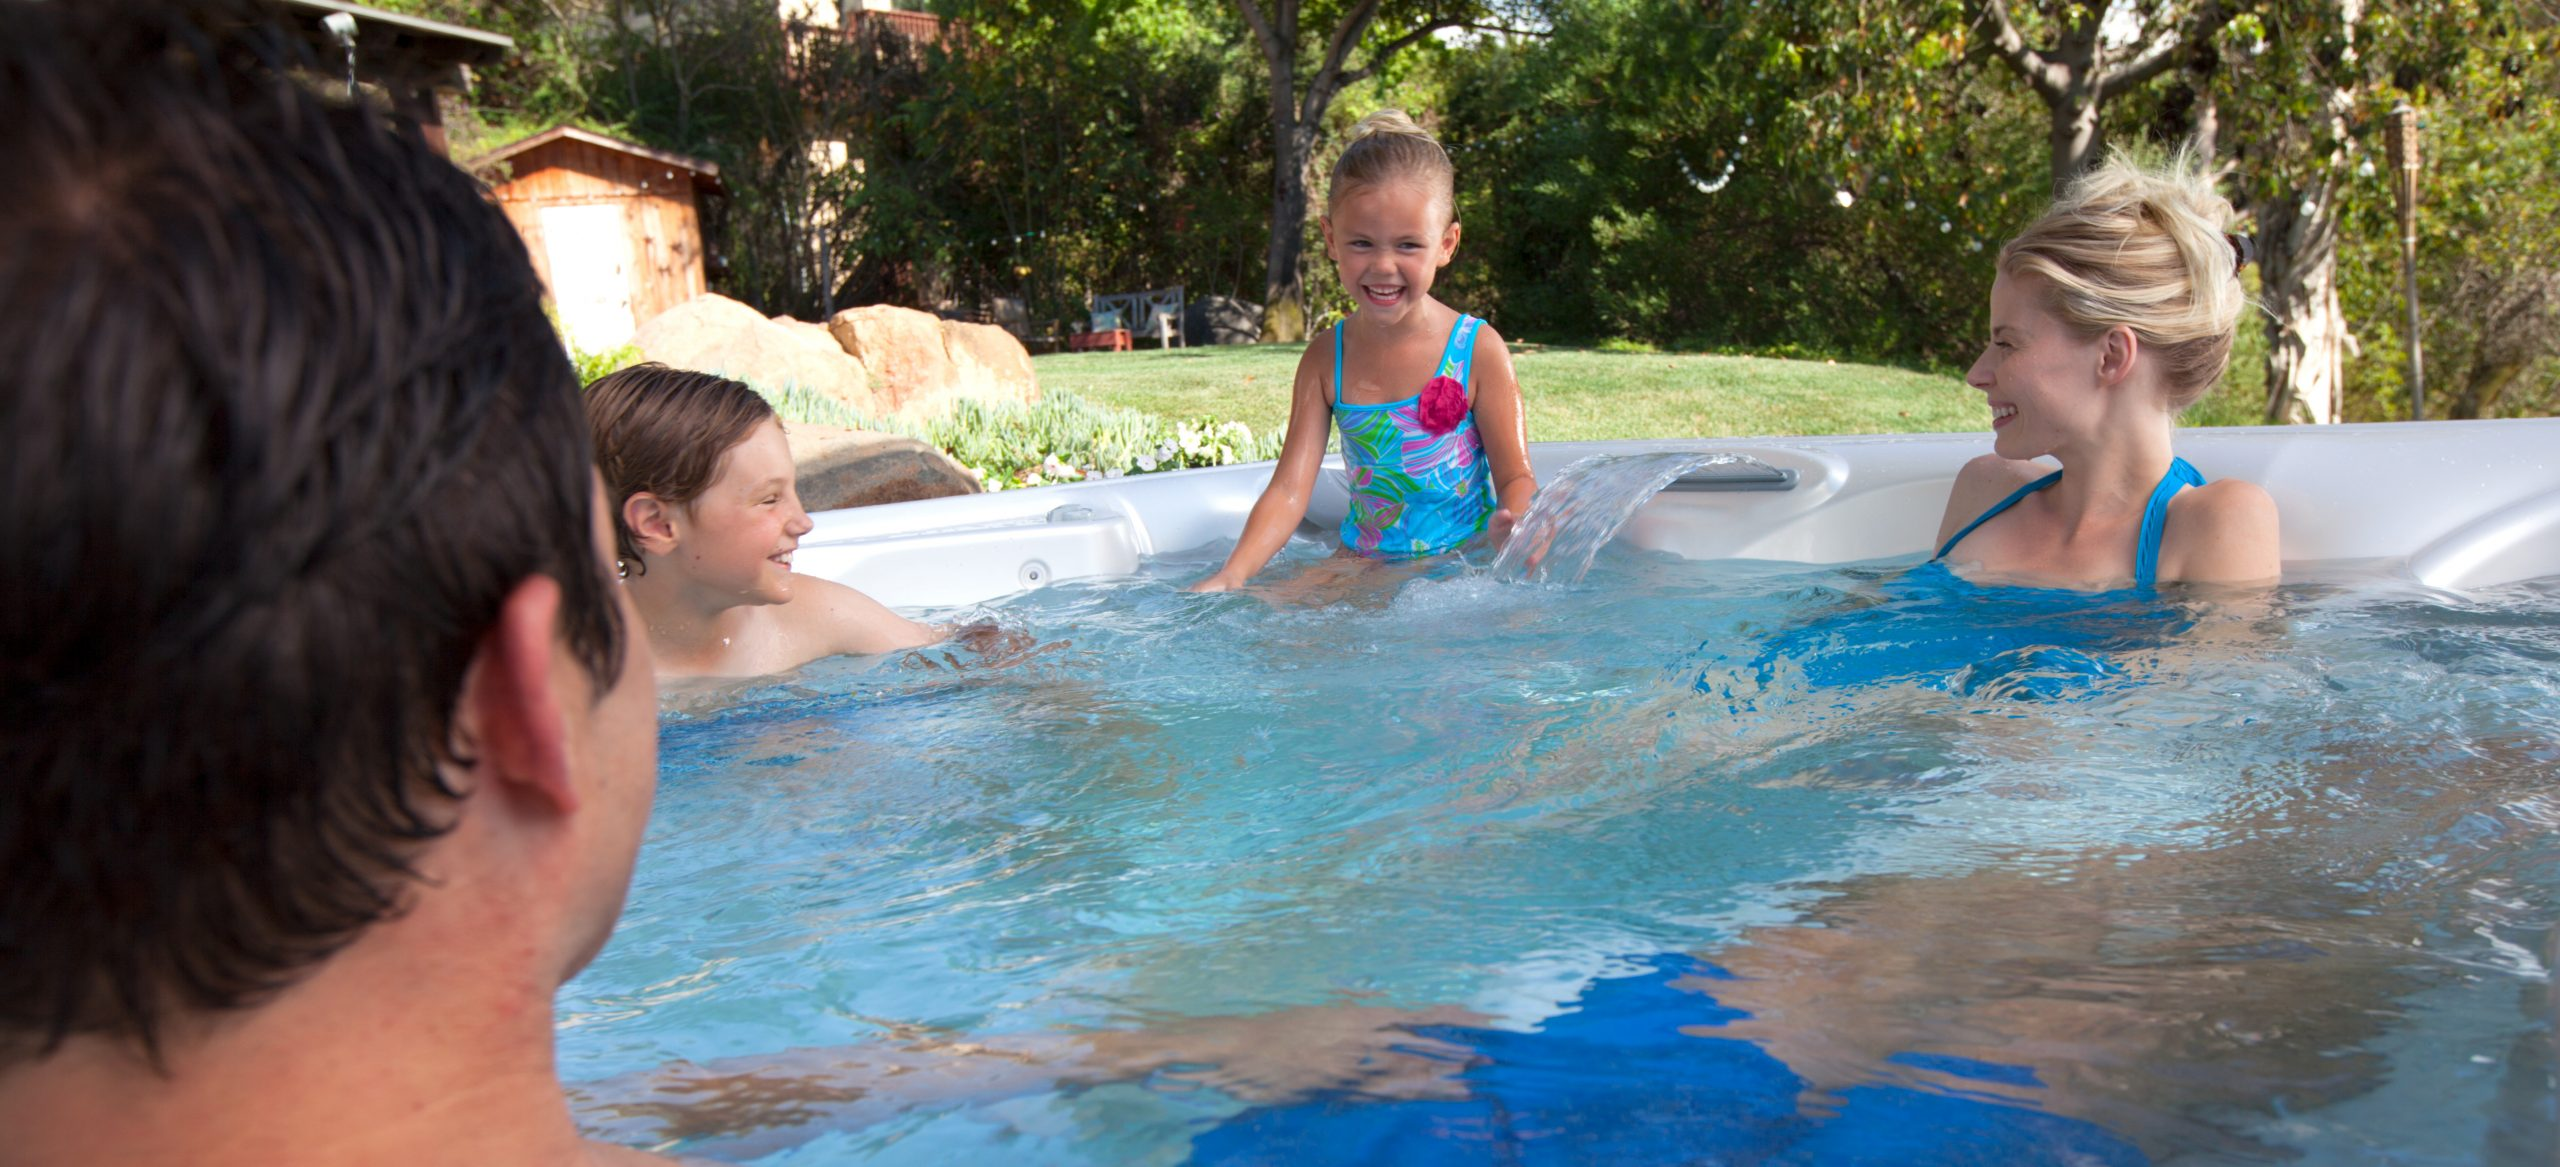 10 Things To Do At Home In Your Hot Tub